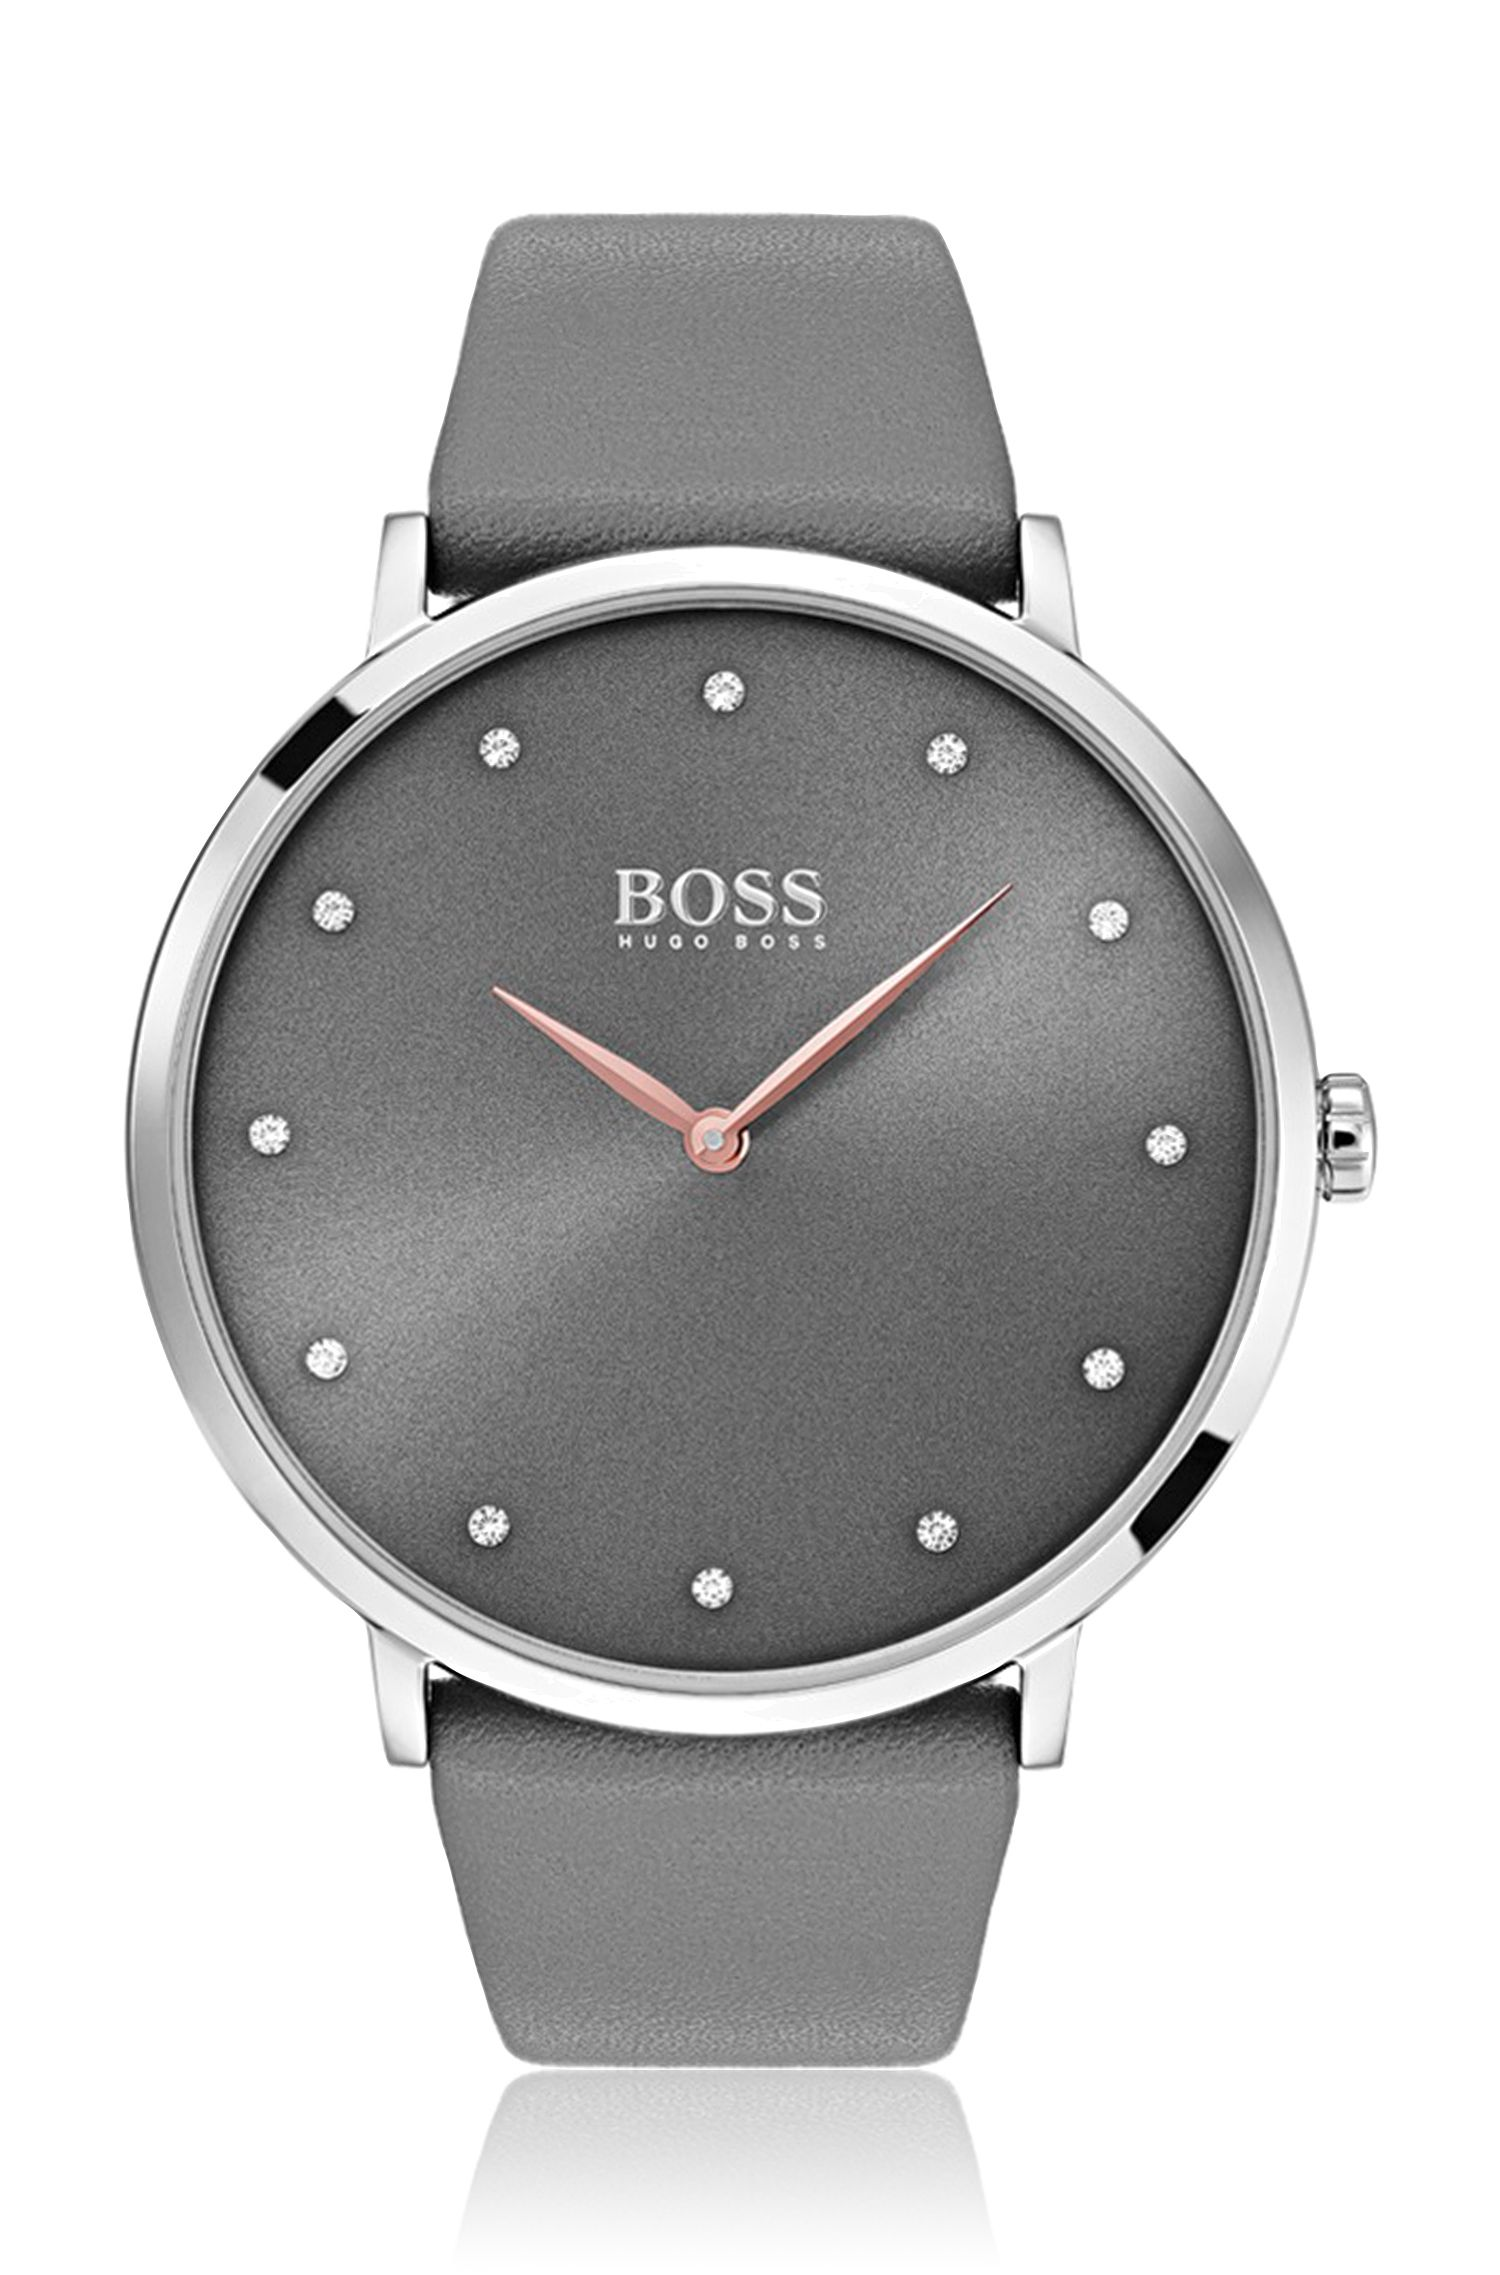 Slimline watch with dark grey dial and leather strap